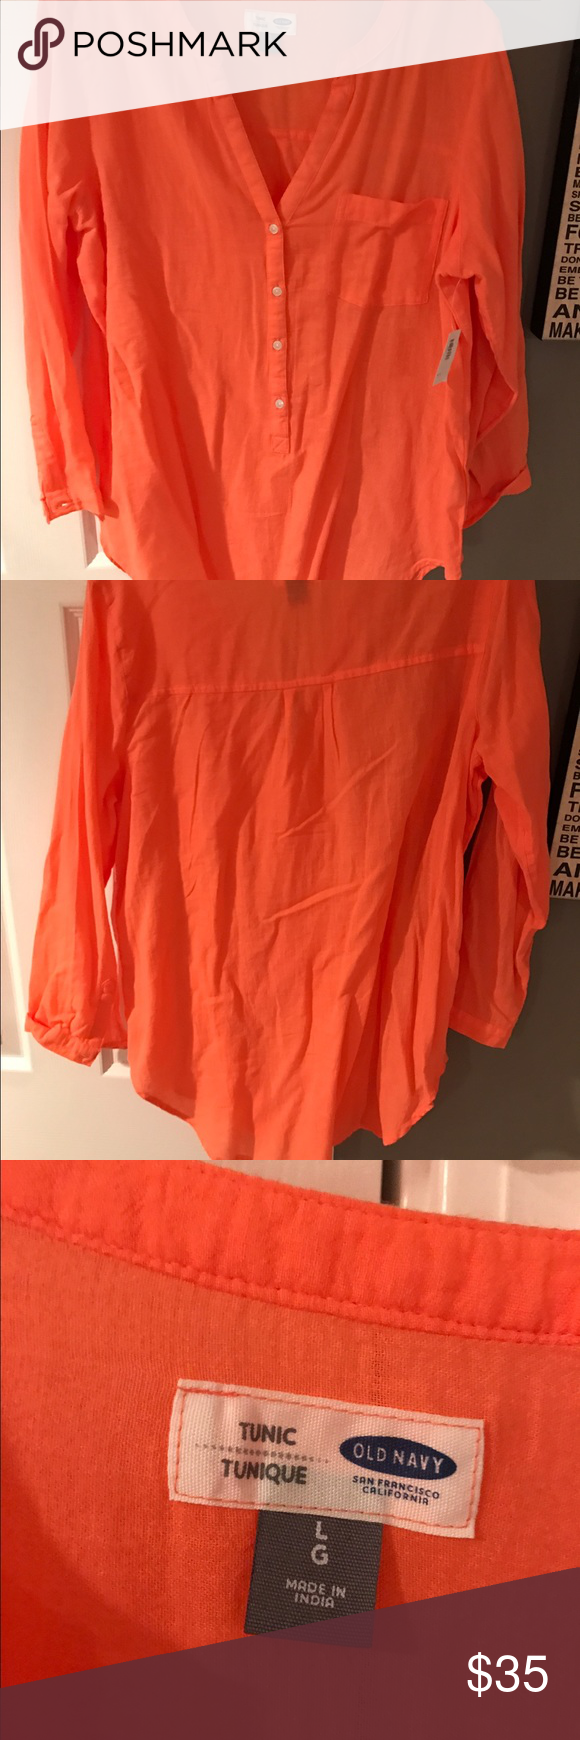 NWT linen top. Bring any offers! NWT linen top. No stains/tears/odor. Shirt is a warm coral color. New and clean but may need a quick ironing then will be fine. Bring any offers! Old Navy Tops